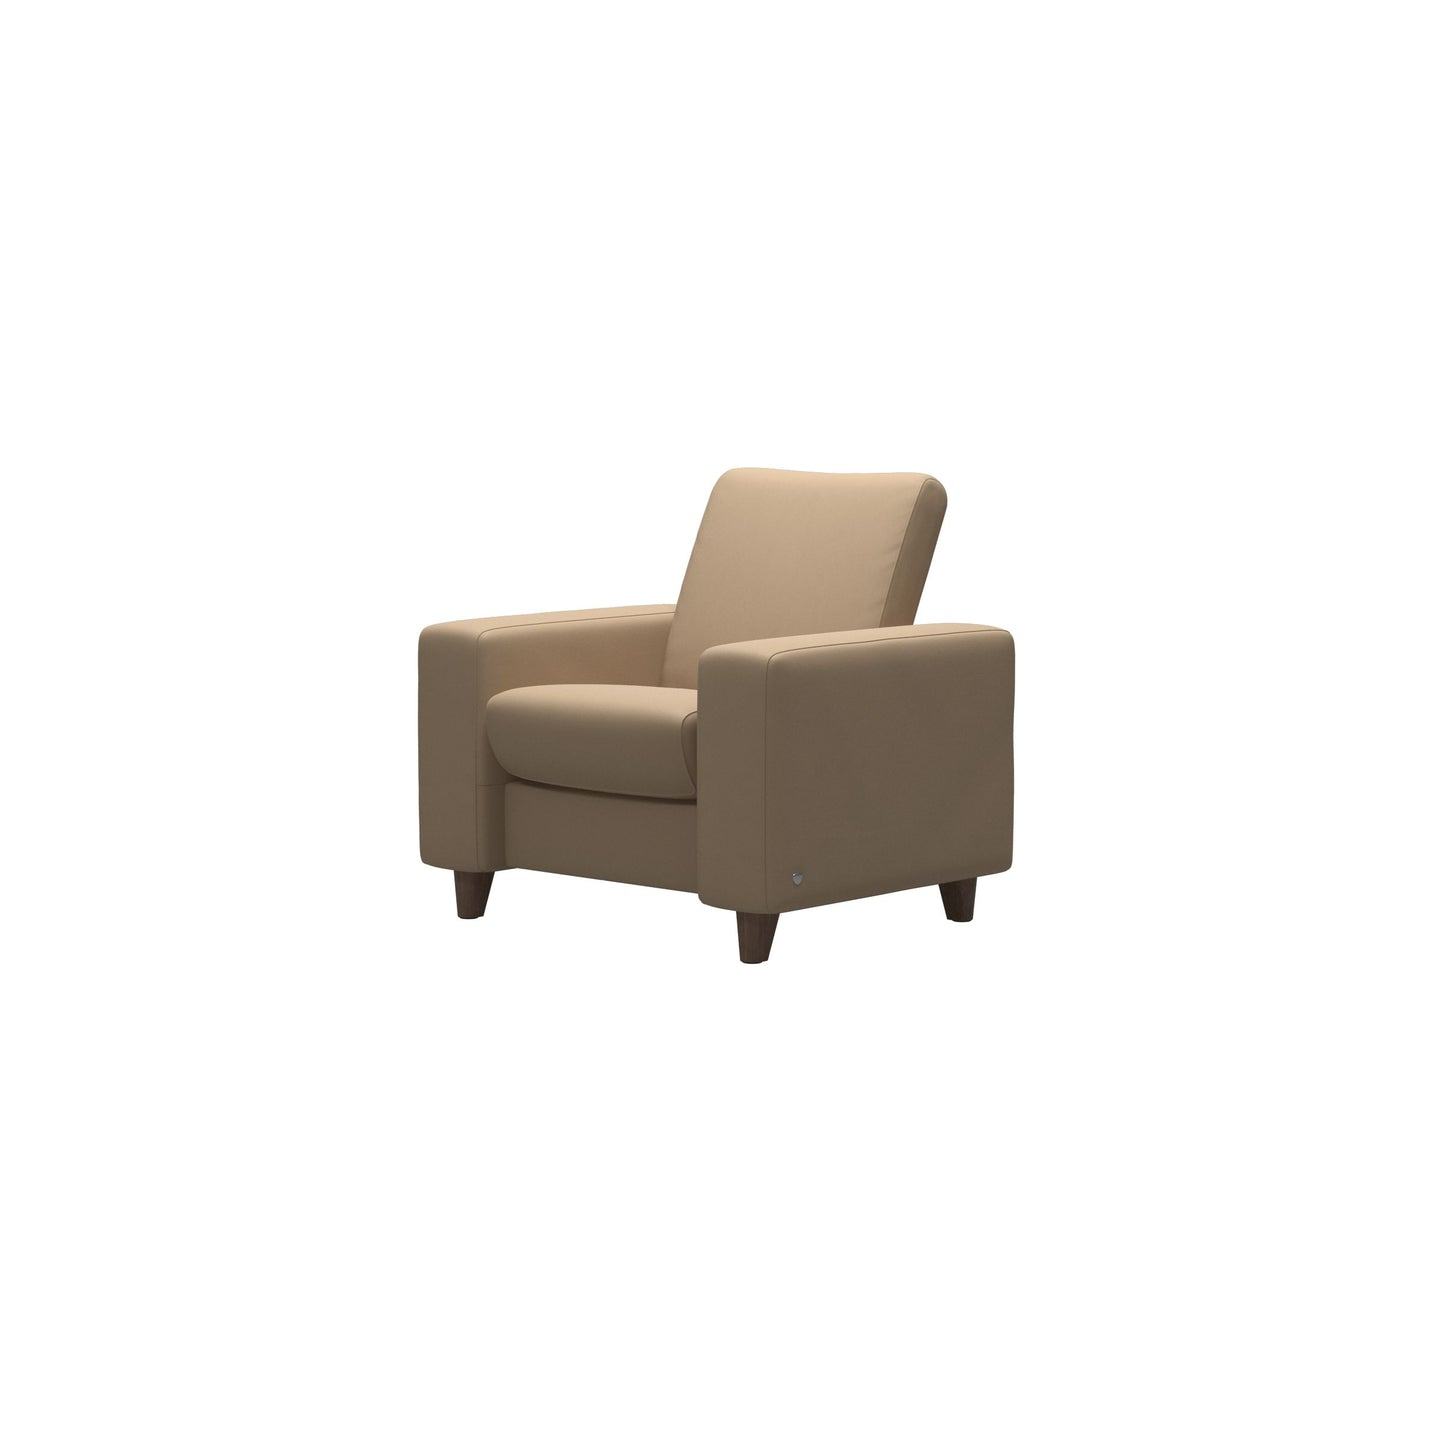 Stressless® Arion 19 A20 chair Low back